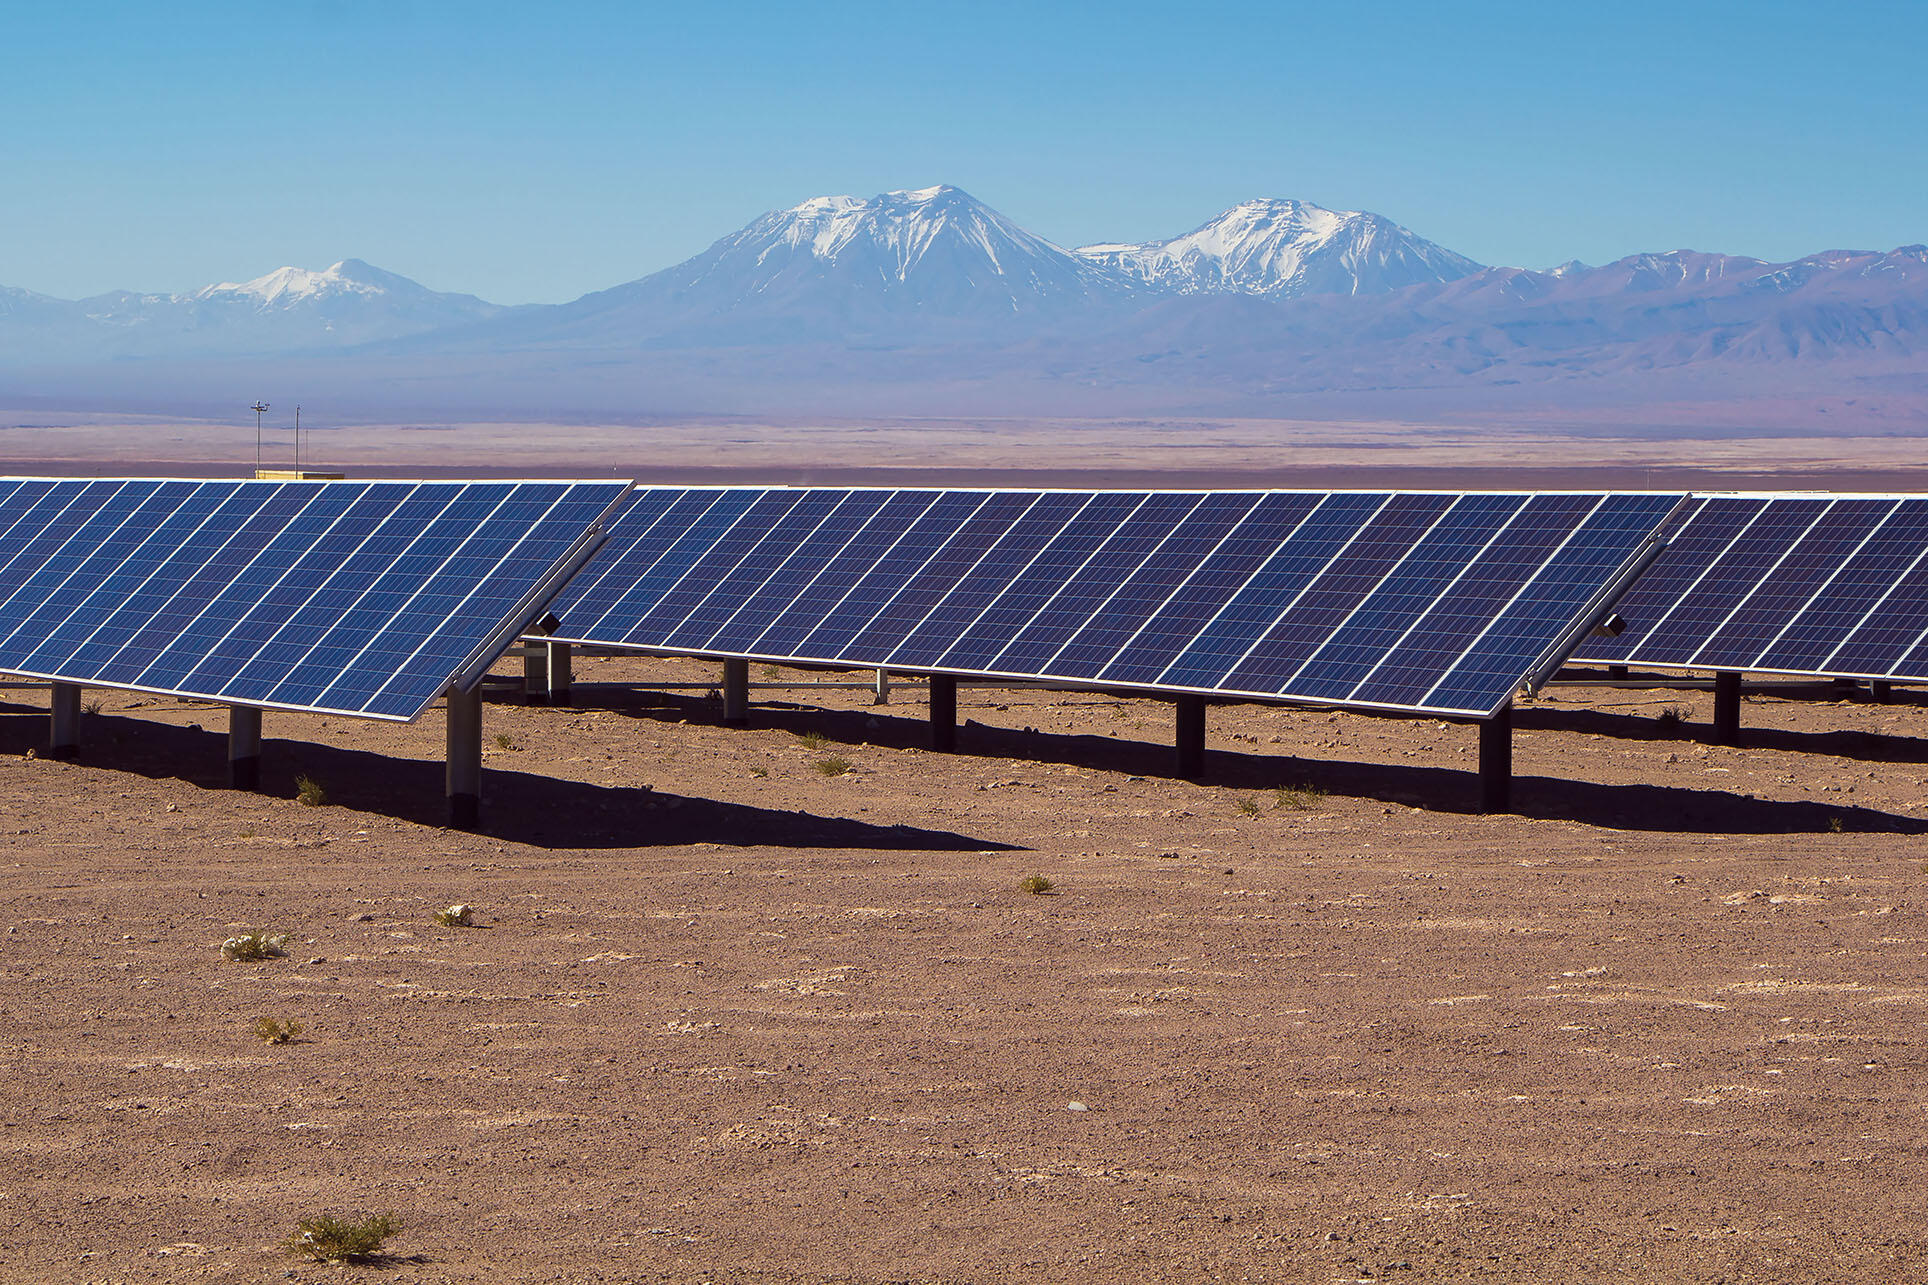 Solar panels in the Atacama Desert, Chile. (Photo by obscur/Shutterstock.com.)